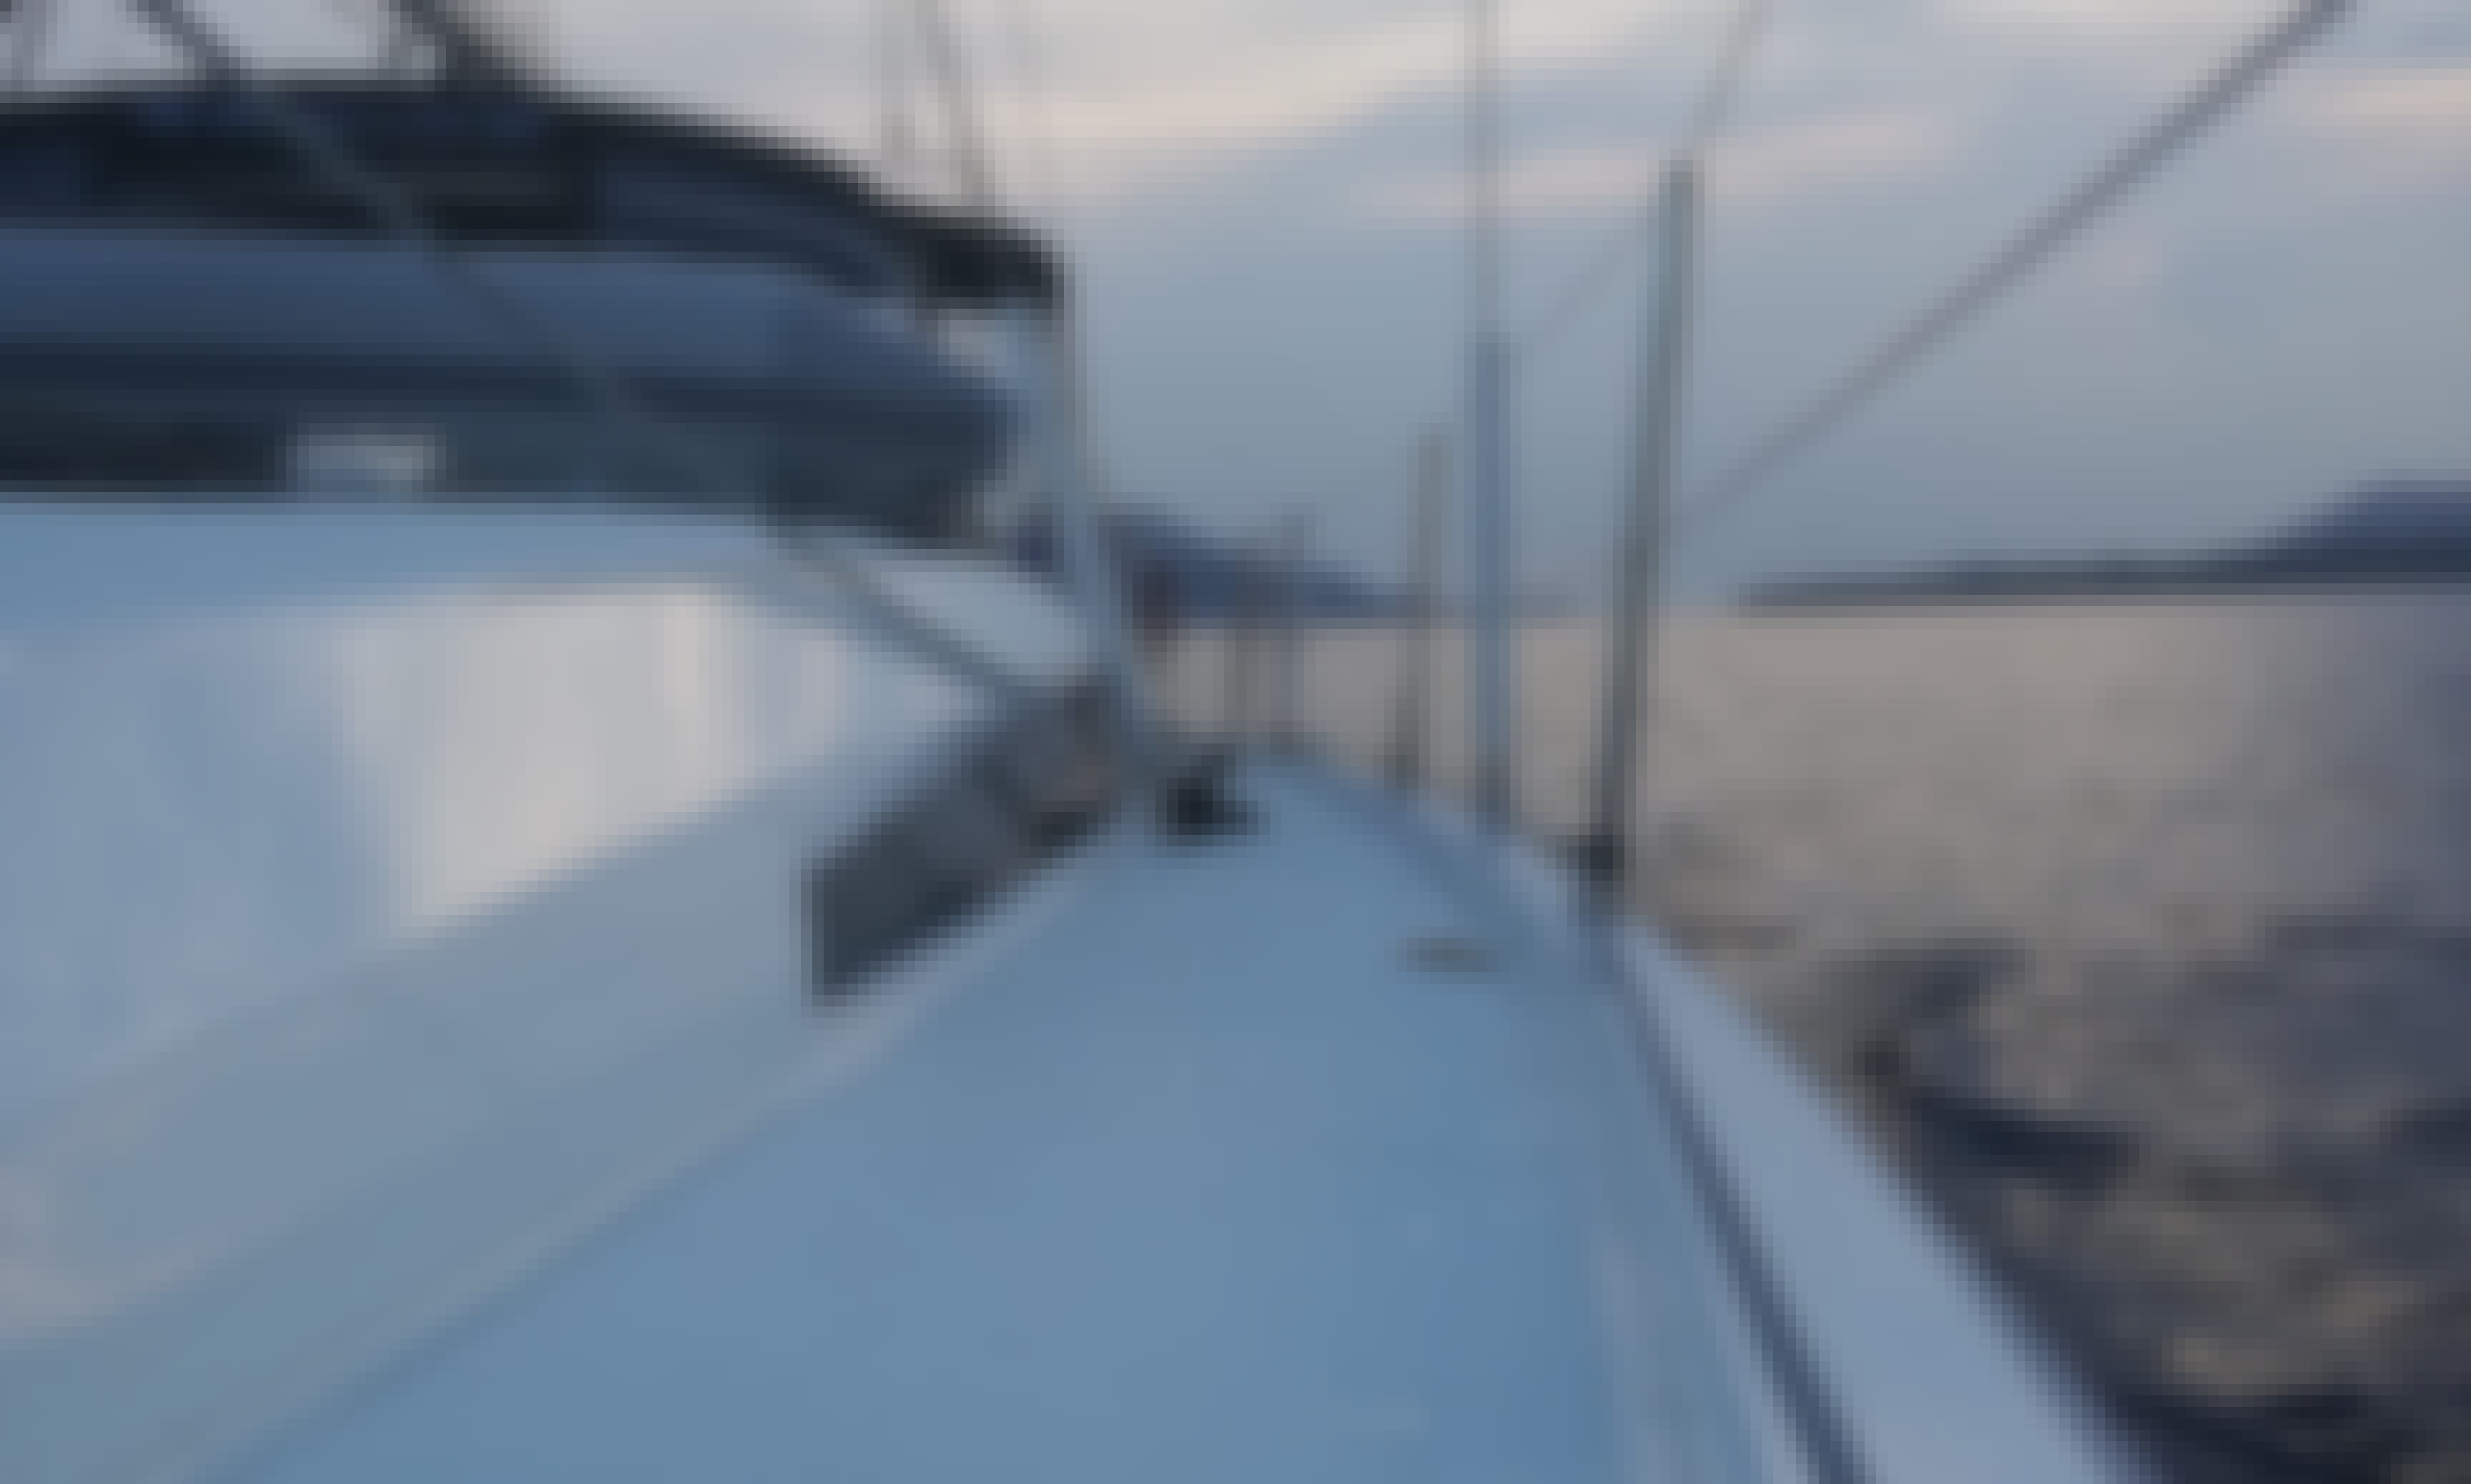 Serenity Beneteau Oceanis 46.1 available for rent at Kos Greece